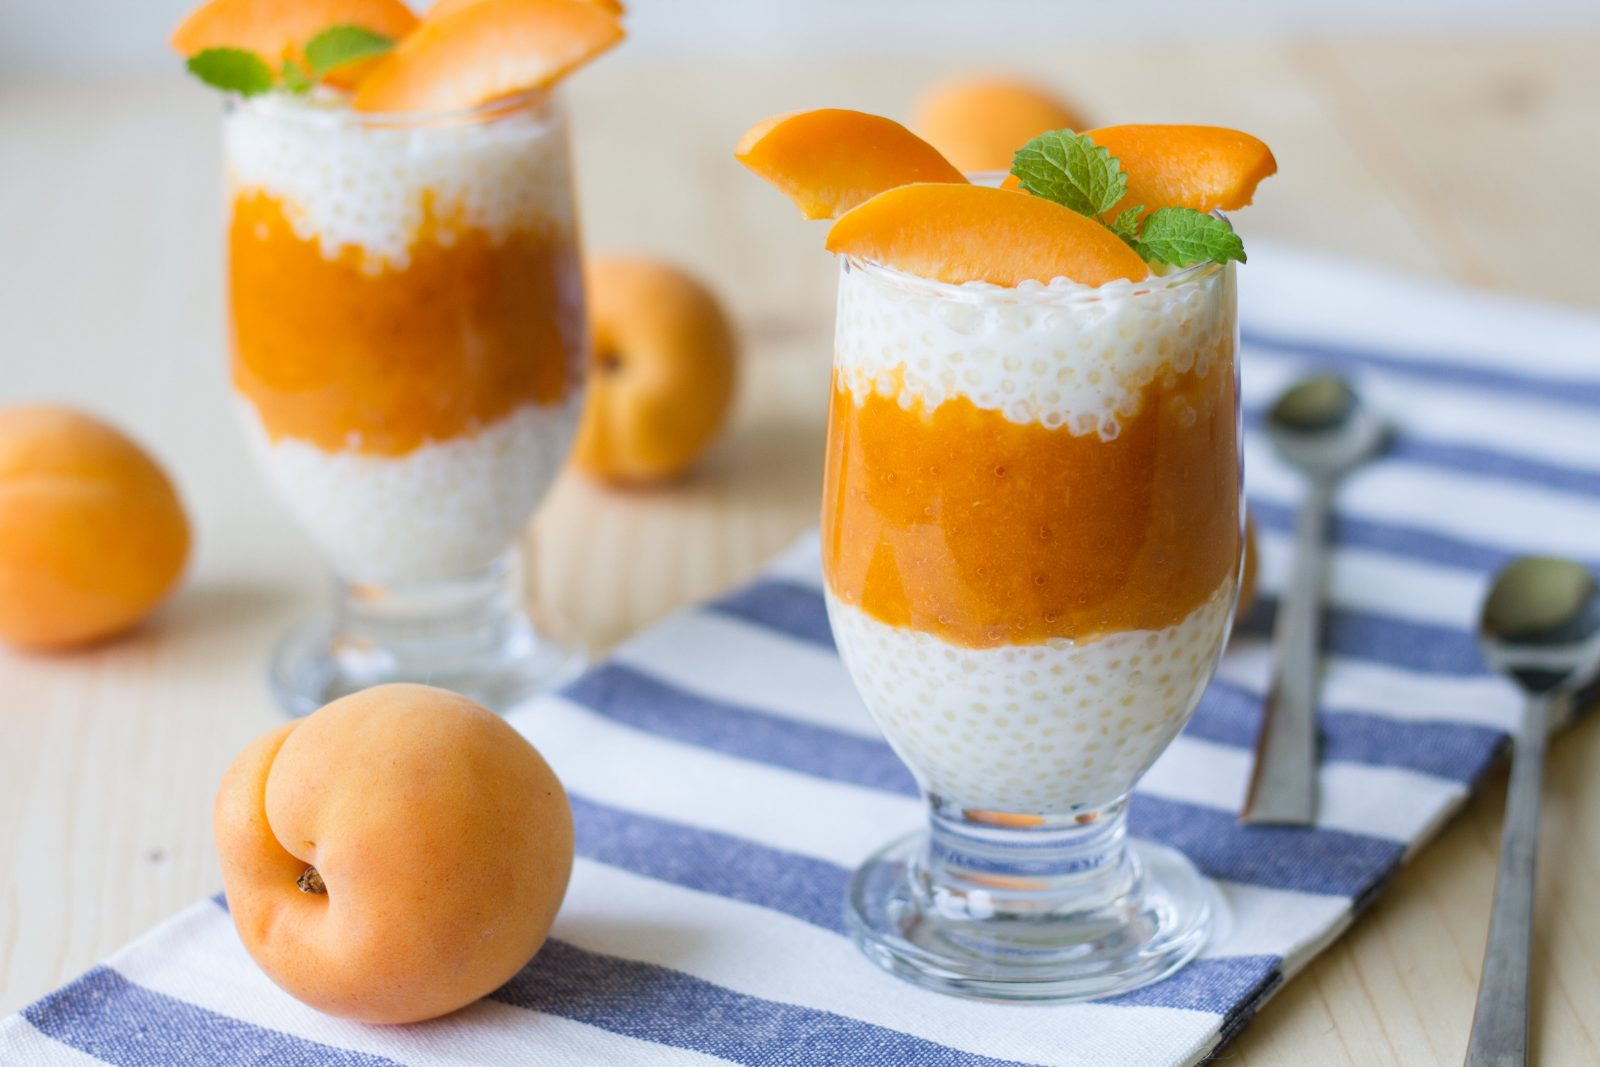 Apricot and tapioca in a cup